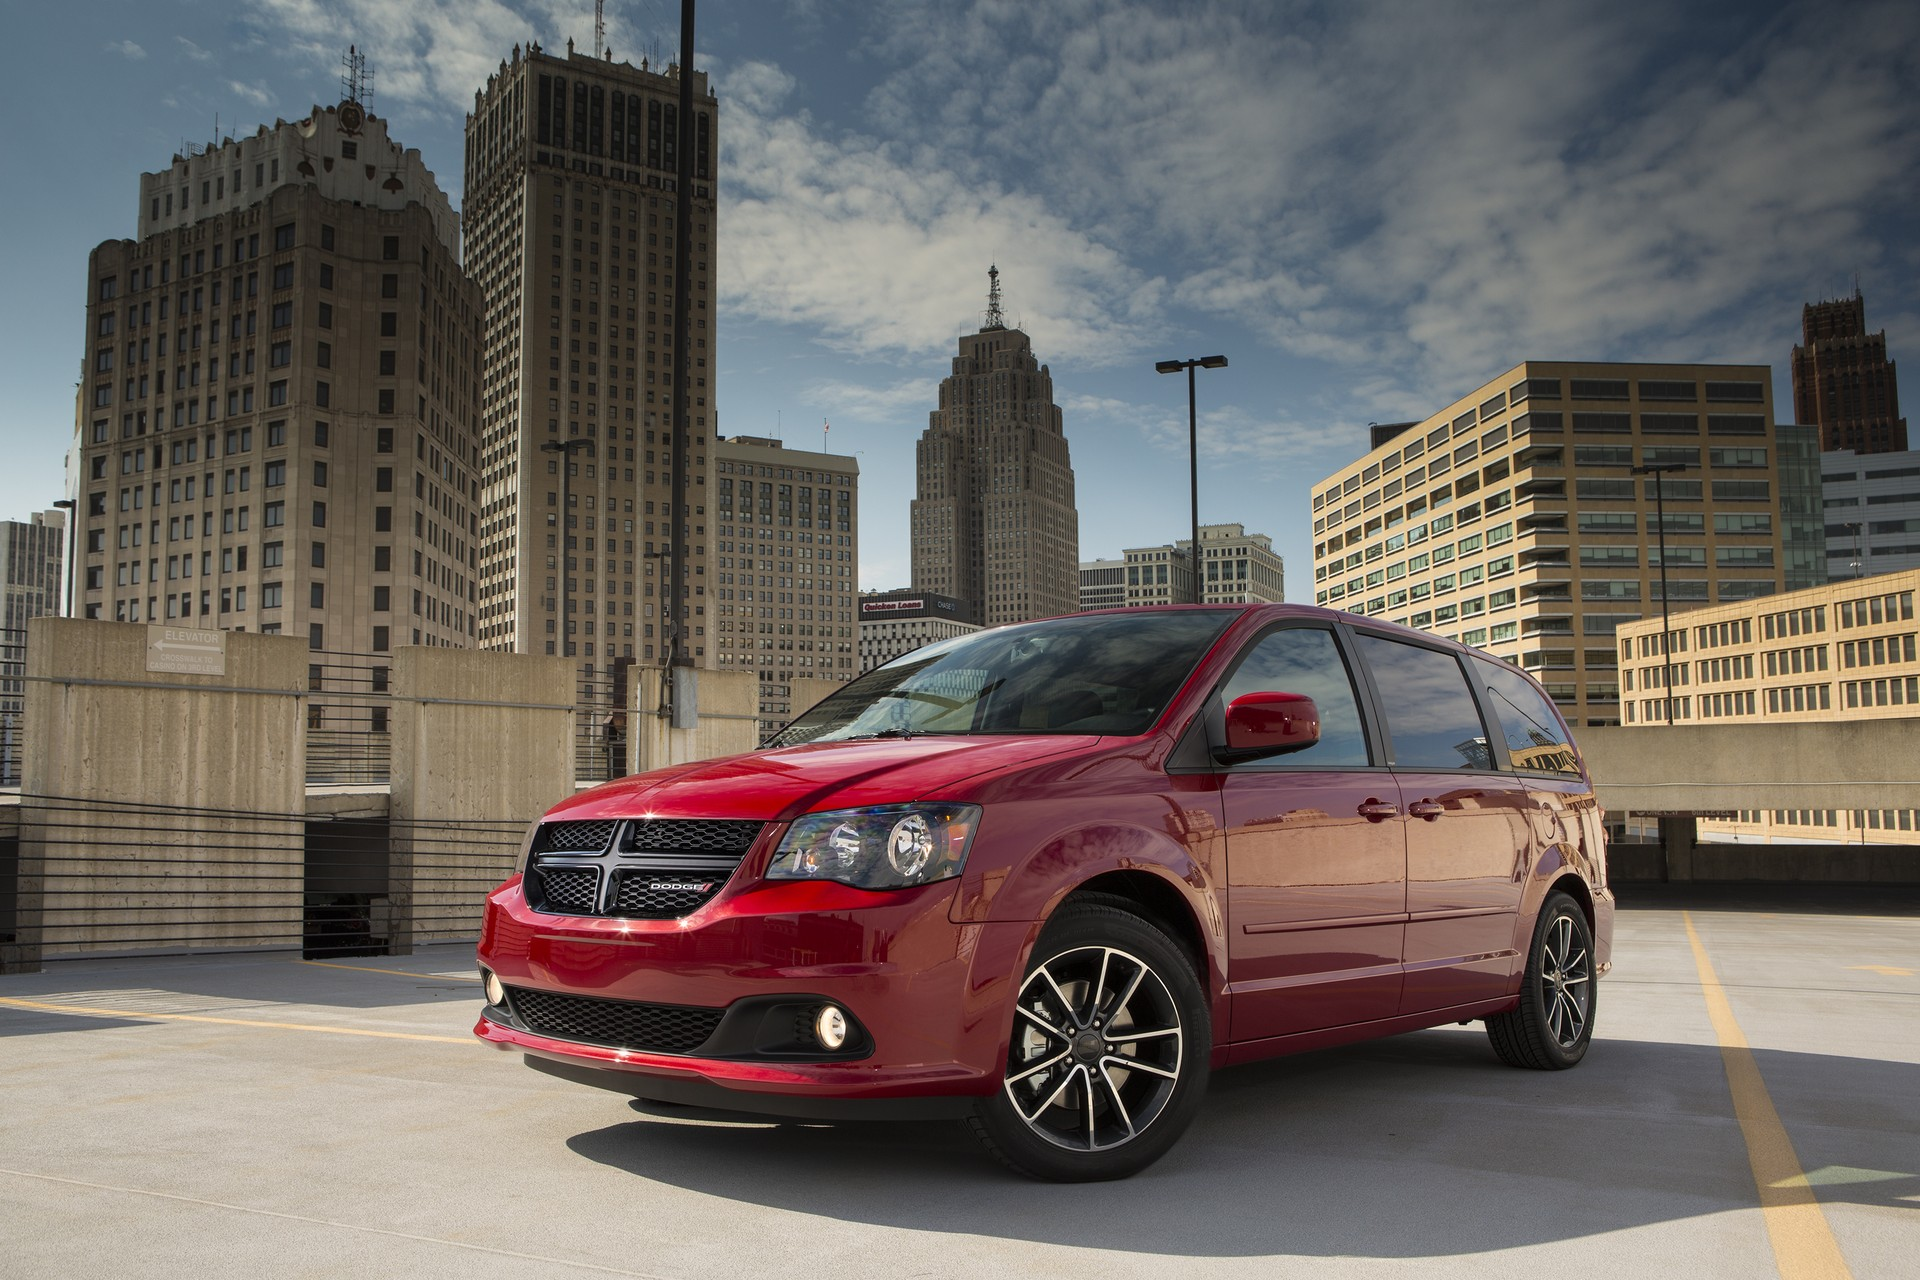 Groovy 2016 Dodge Grand Caravan Review Ratings Specs Prices And Ncnpc Chair Design For Home Ncnpcorg